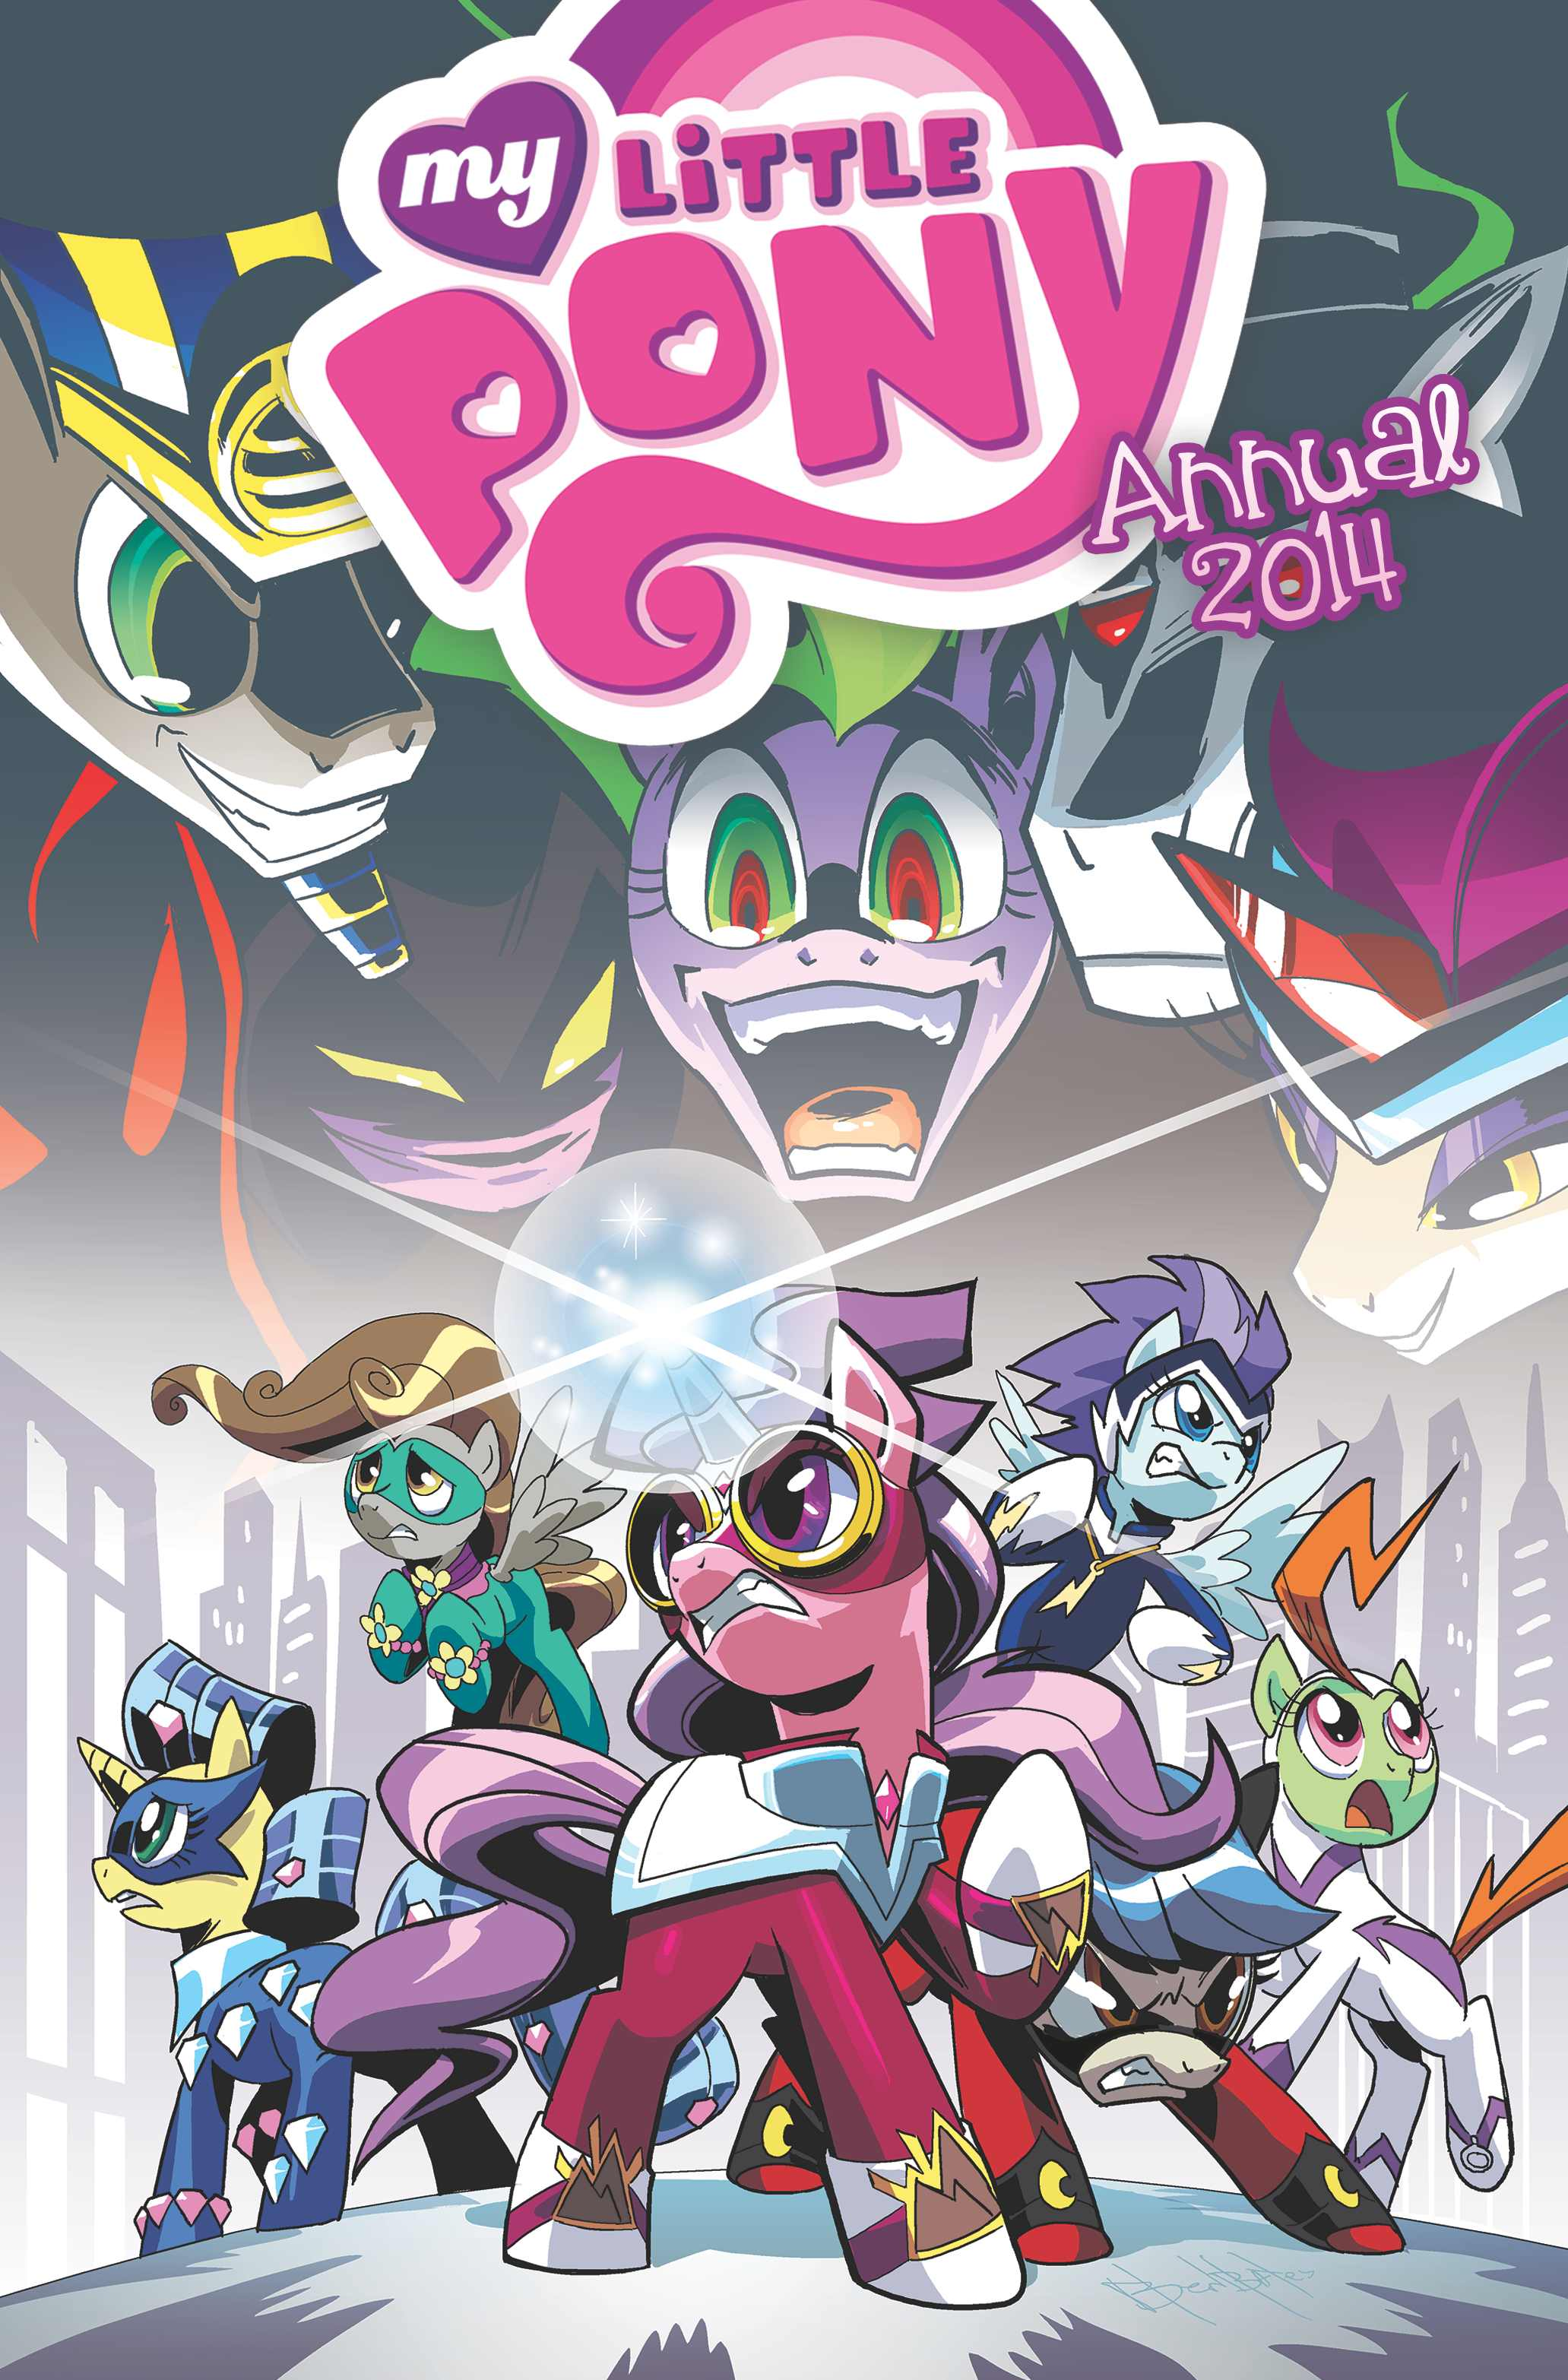 My Little Pony Annual 2014 | My Little Pony Friendship is ...